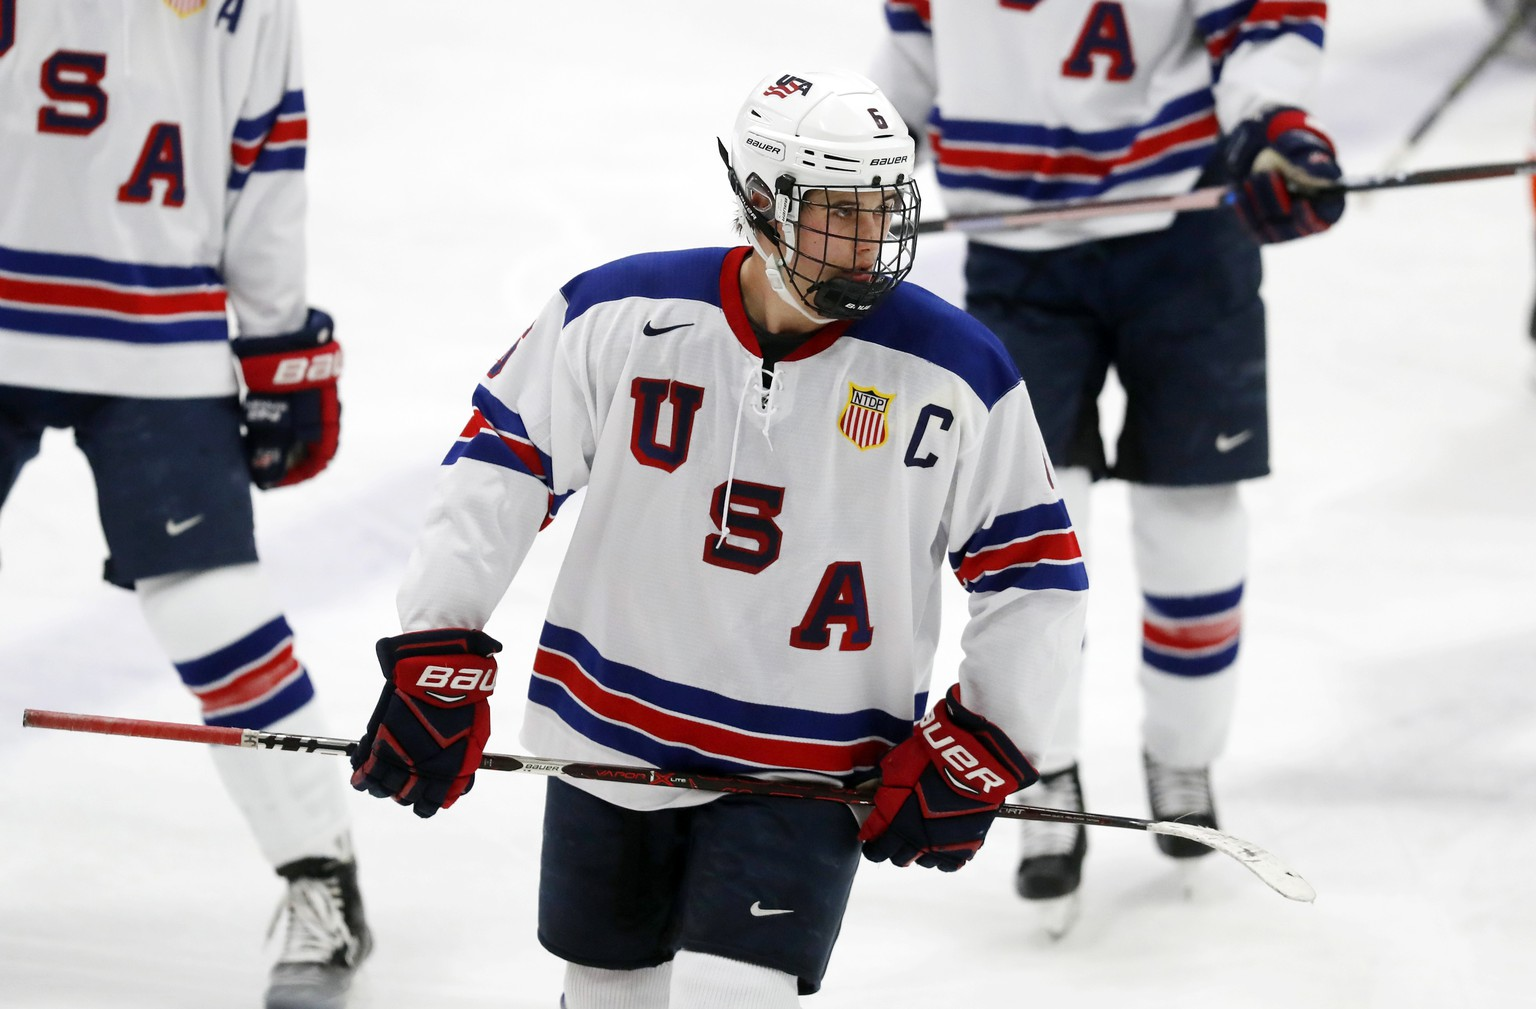 In this Wednesday, Nov. 21, 2018, photo, Jack Hughes, expected to be a top pick in the next NHL hockey draft, plays against Bowling Green in Plymouth, Mich. USA Hockey has developed the nation's top players for more than two-plus decades, producing a quartet of No. 1 overall picks in the NHL draft, including Auston Matthews and Patrick Kane. Hughes may be next. (AP Photo/Carlos Osorio)